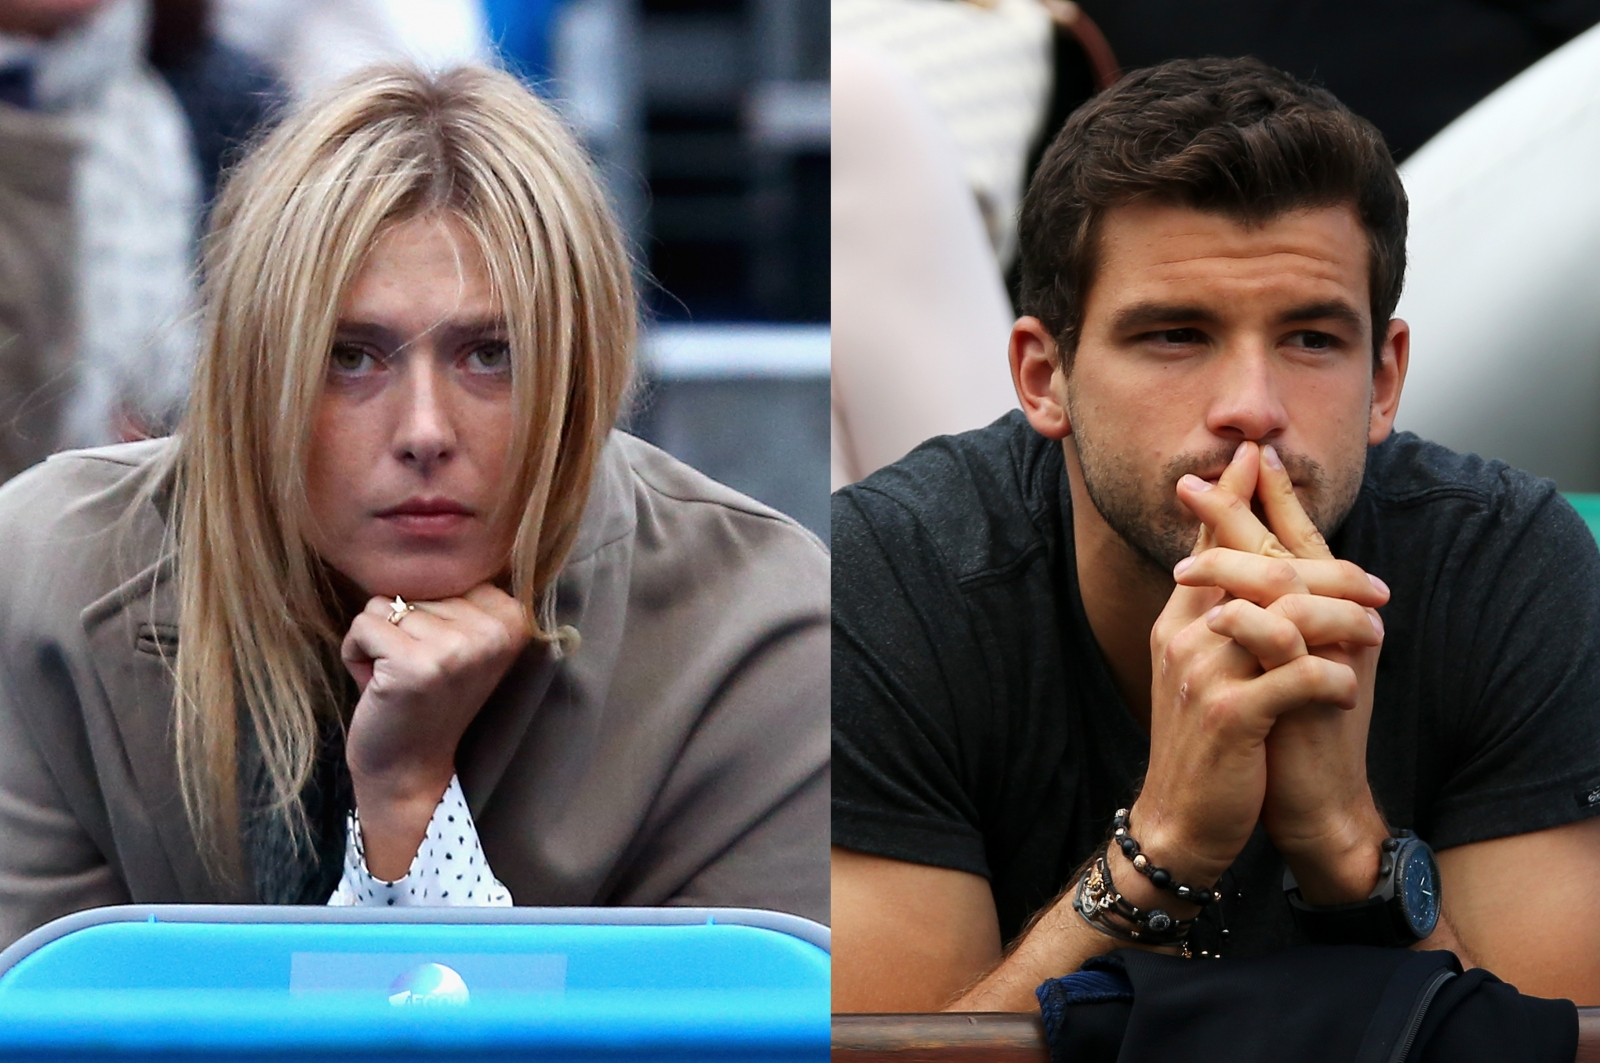 Dimitrov dating sharapova